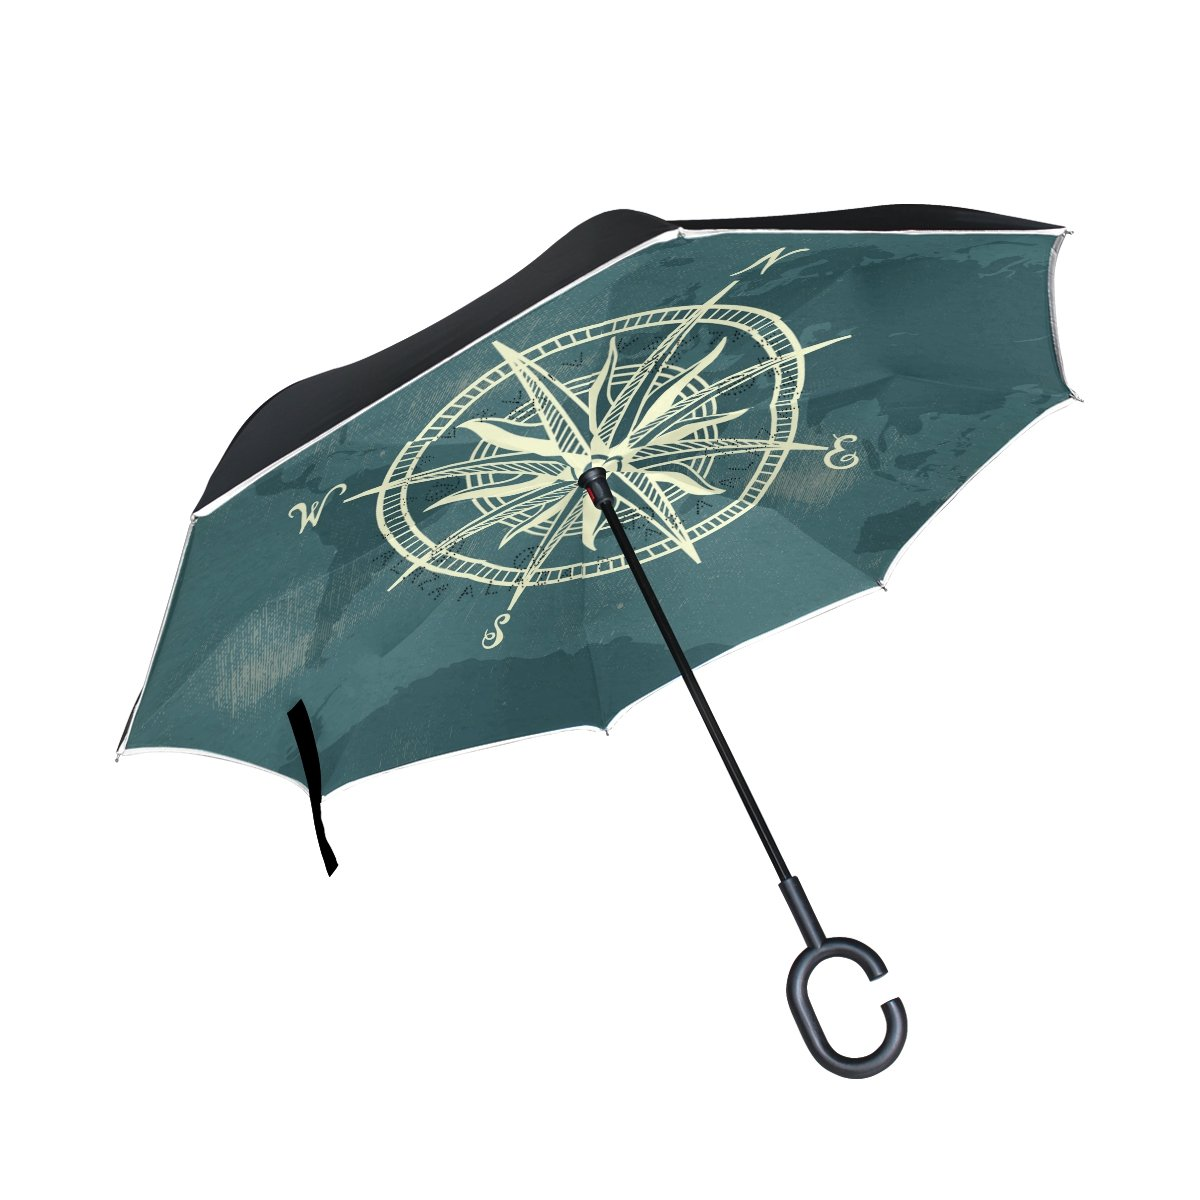 LEISISI Compass On World Map Reverse Umbrella Inverted Double Layer Windproof UV Protection Reverse Folding Umbrellas Inverted Umbrella Travel Umbrella with C Shaped Handle